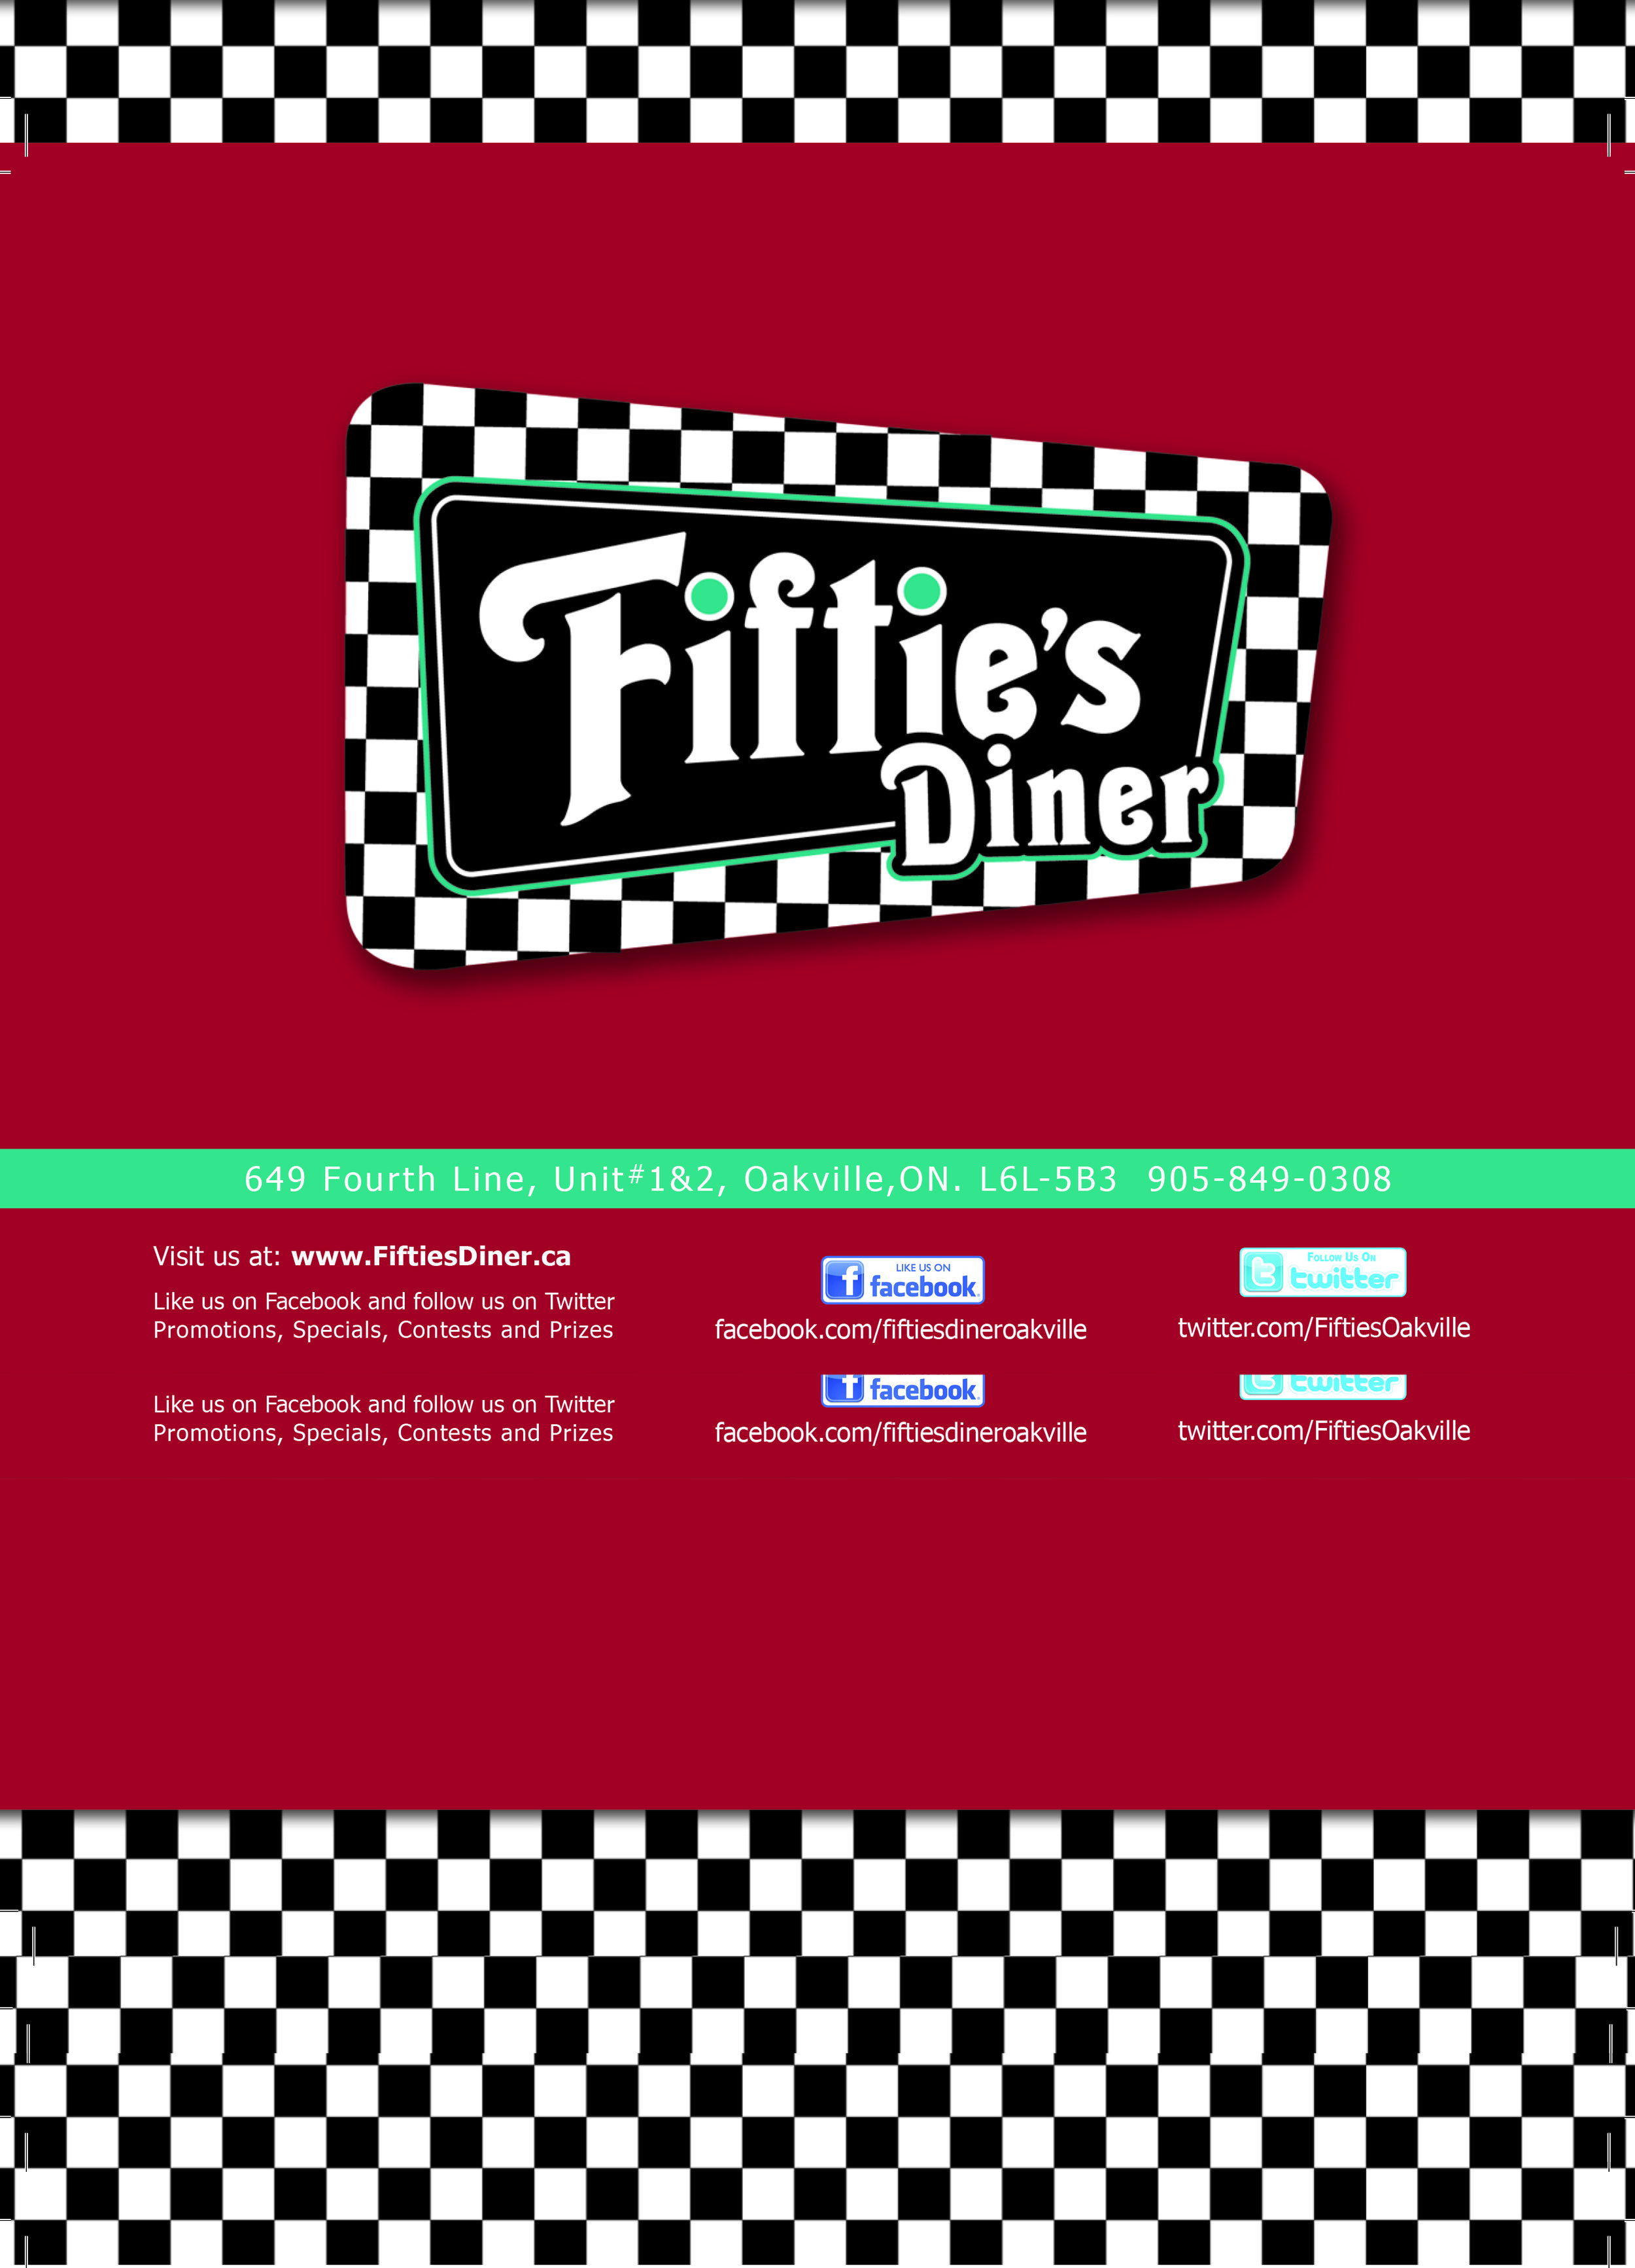 Fifties Diner logo for website (1).jpg